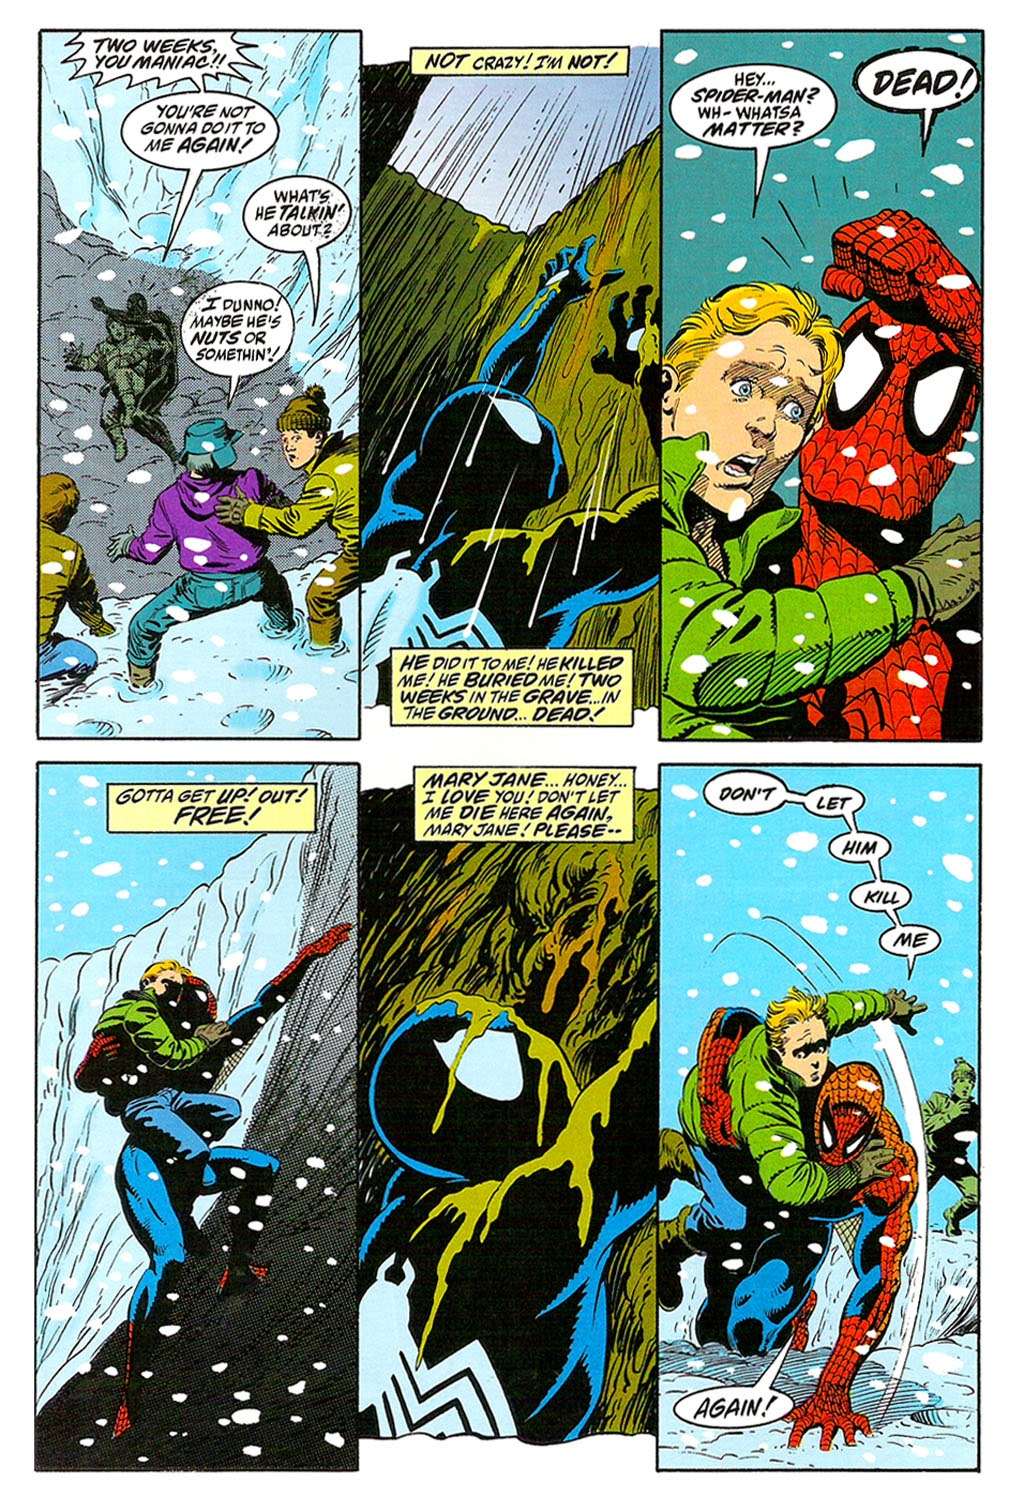 Read online The Amazing Spider-Man: Soul of the Hunter comic -  Issue # Full - 12